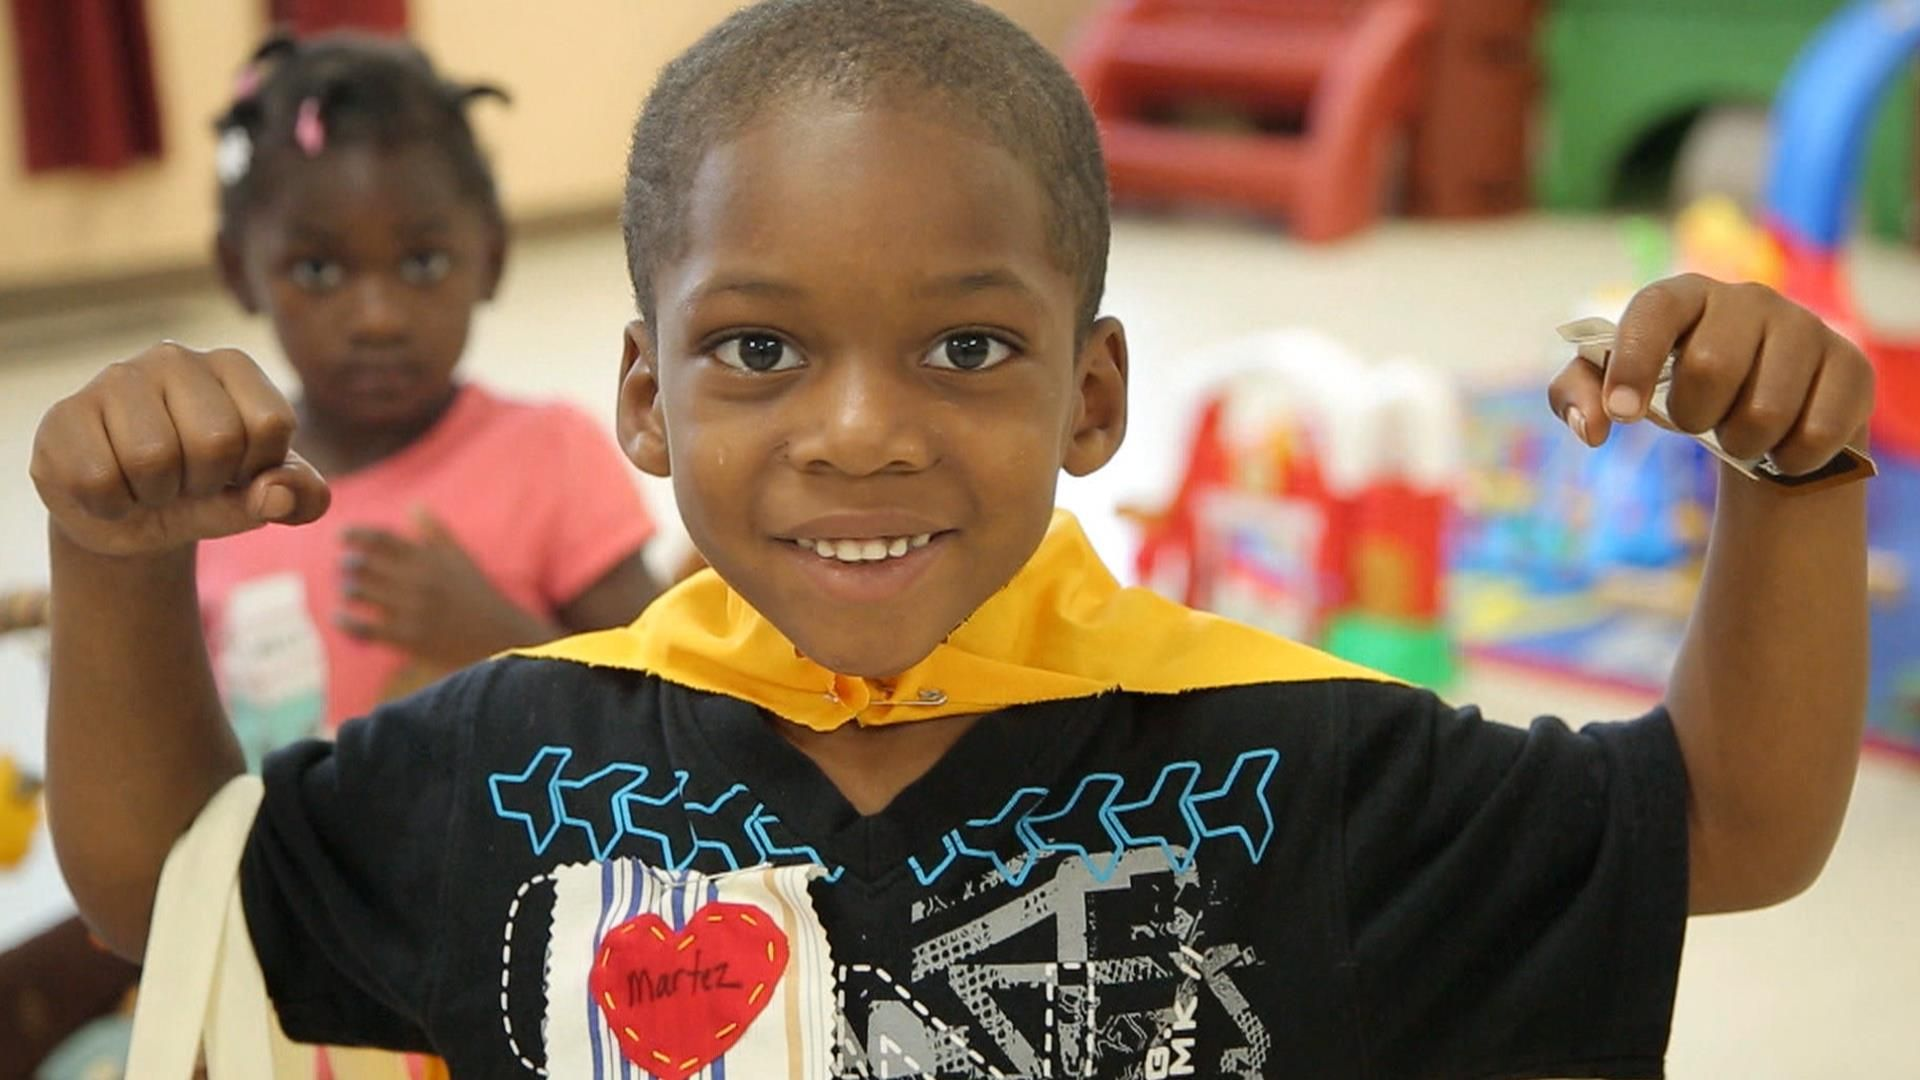 Schoolkids Help Homeless Children Feel Super With Hand Crafted Capes Homeless Children Helping The Homeless Counseling Kids